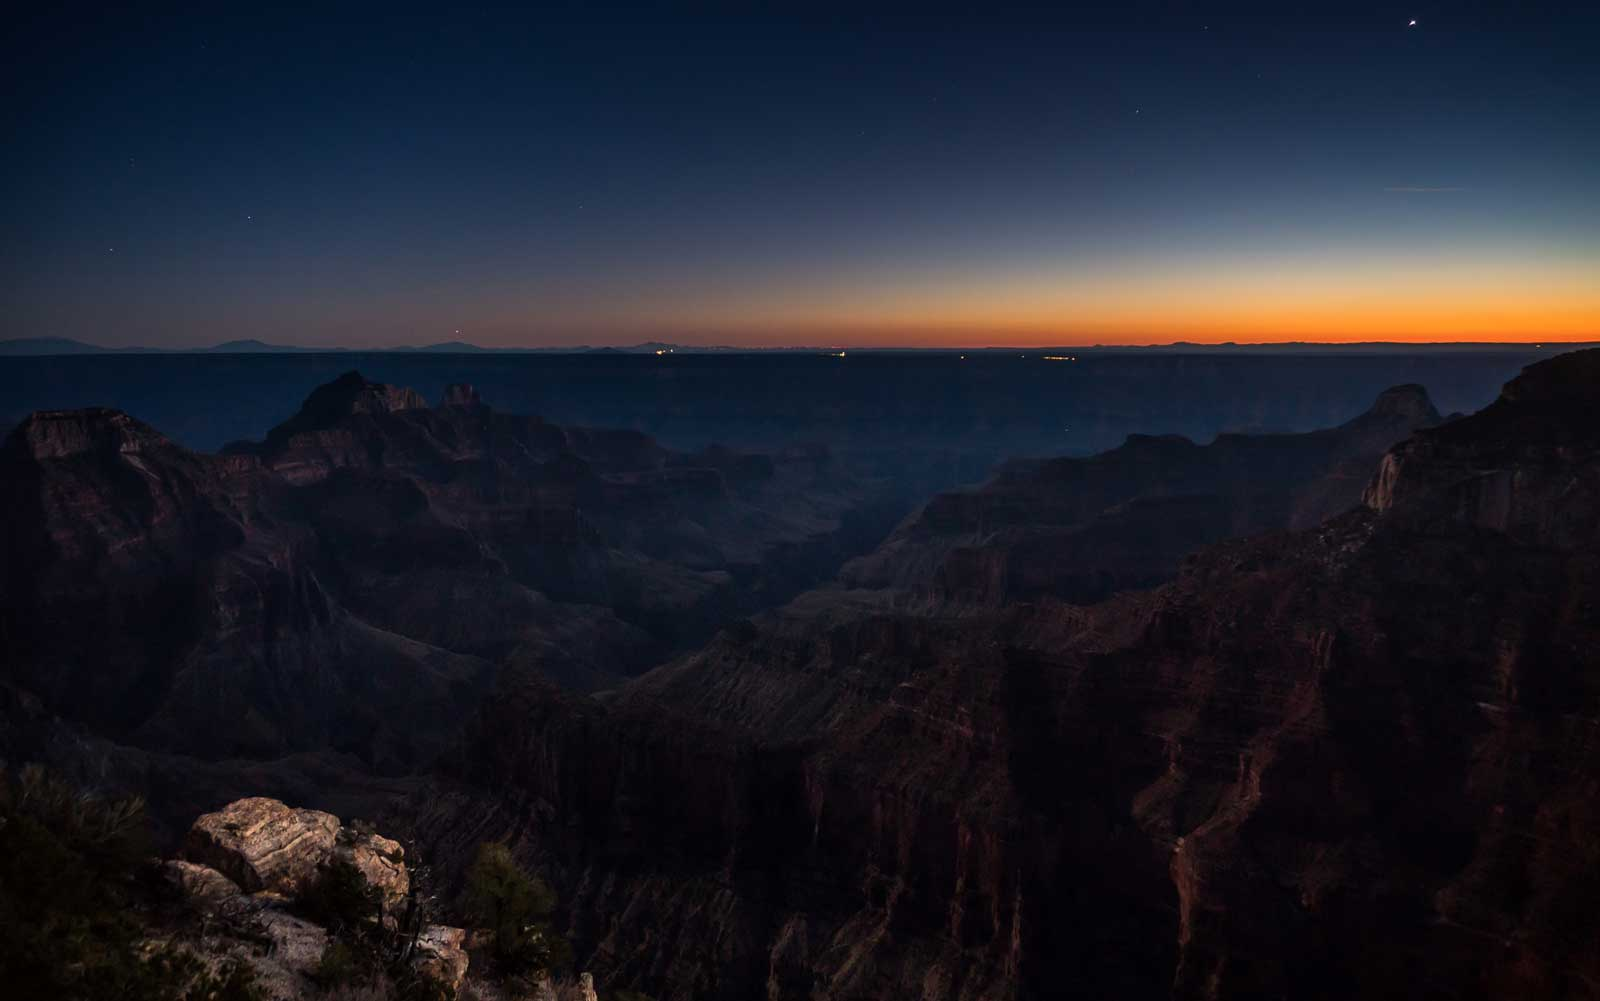 Nightfall at the Grand Canyon from Bright Angel Point on the North Rim.